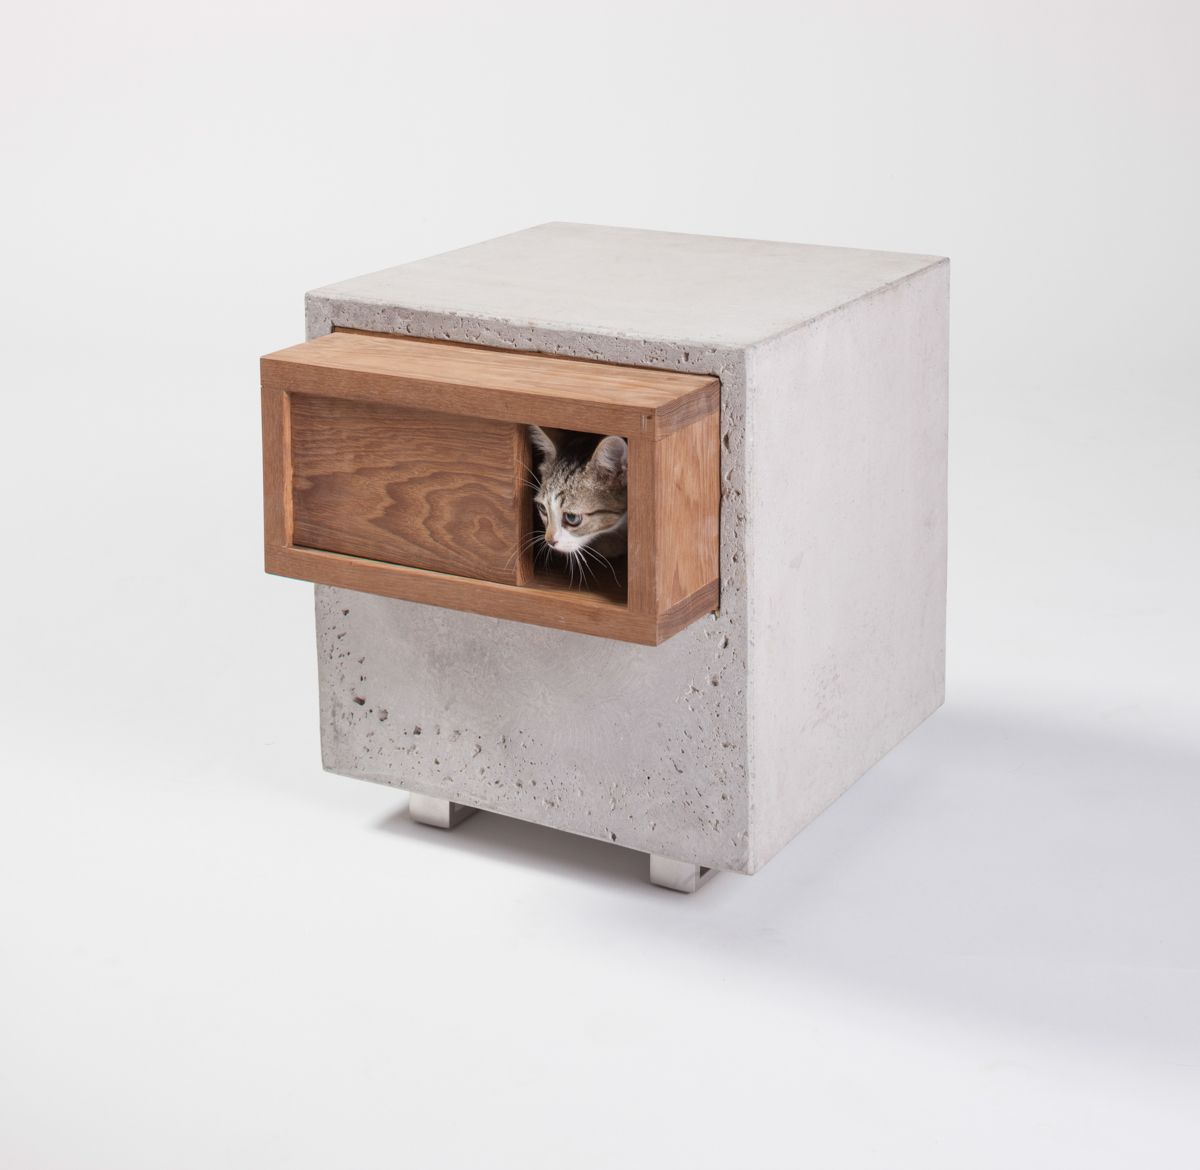 Inspired Outdoor Cat Shelters by Architects for Animals